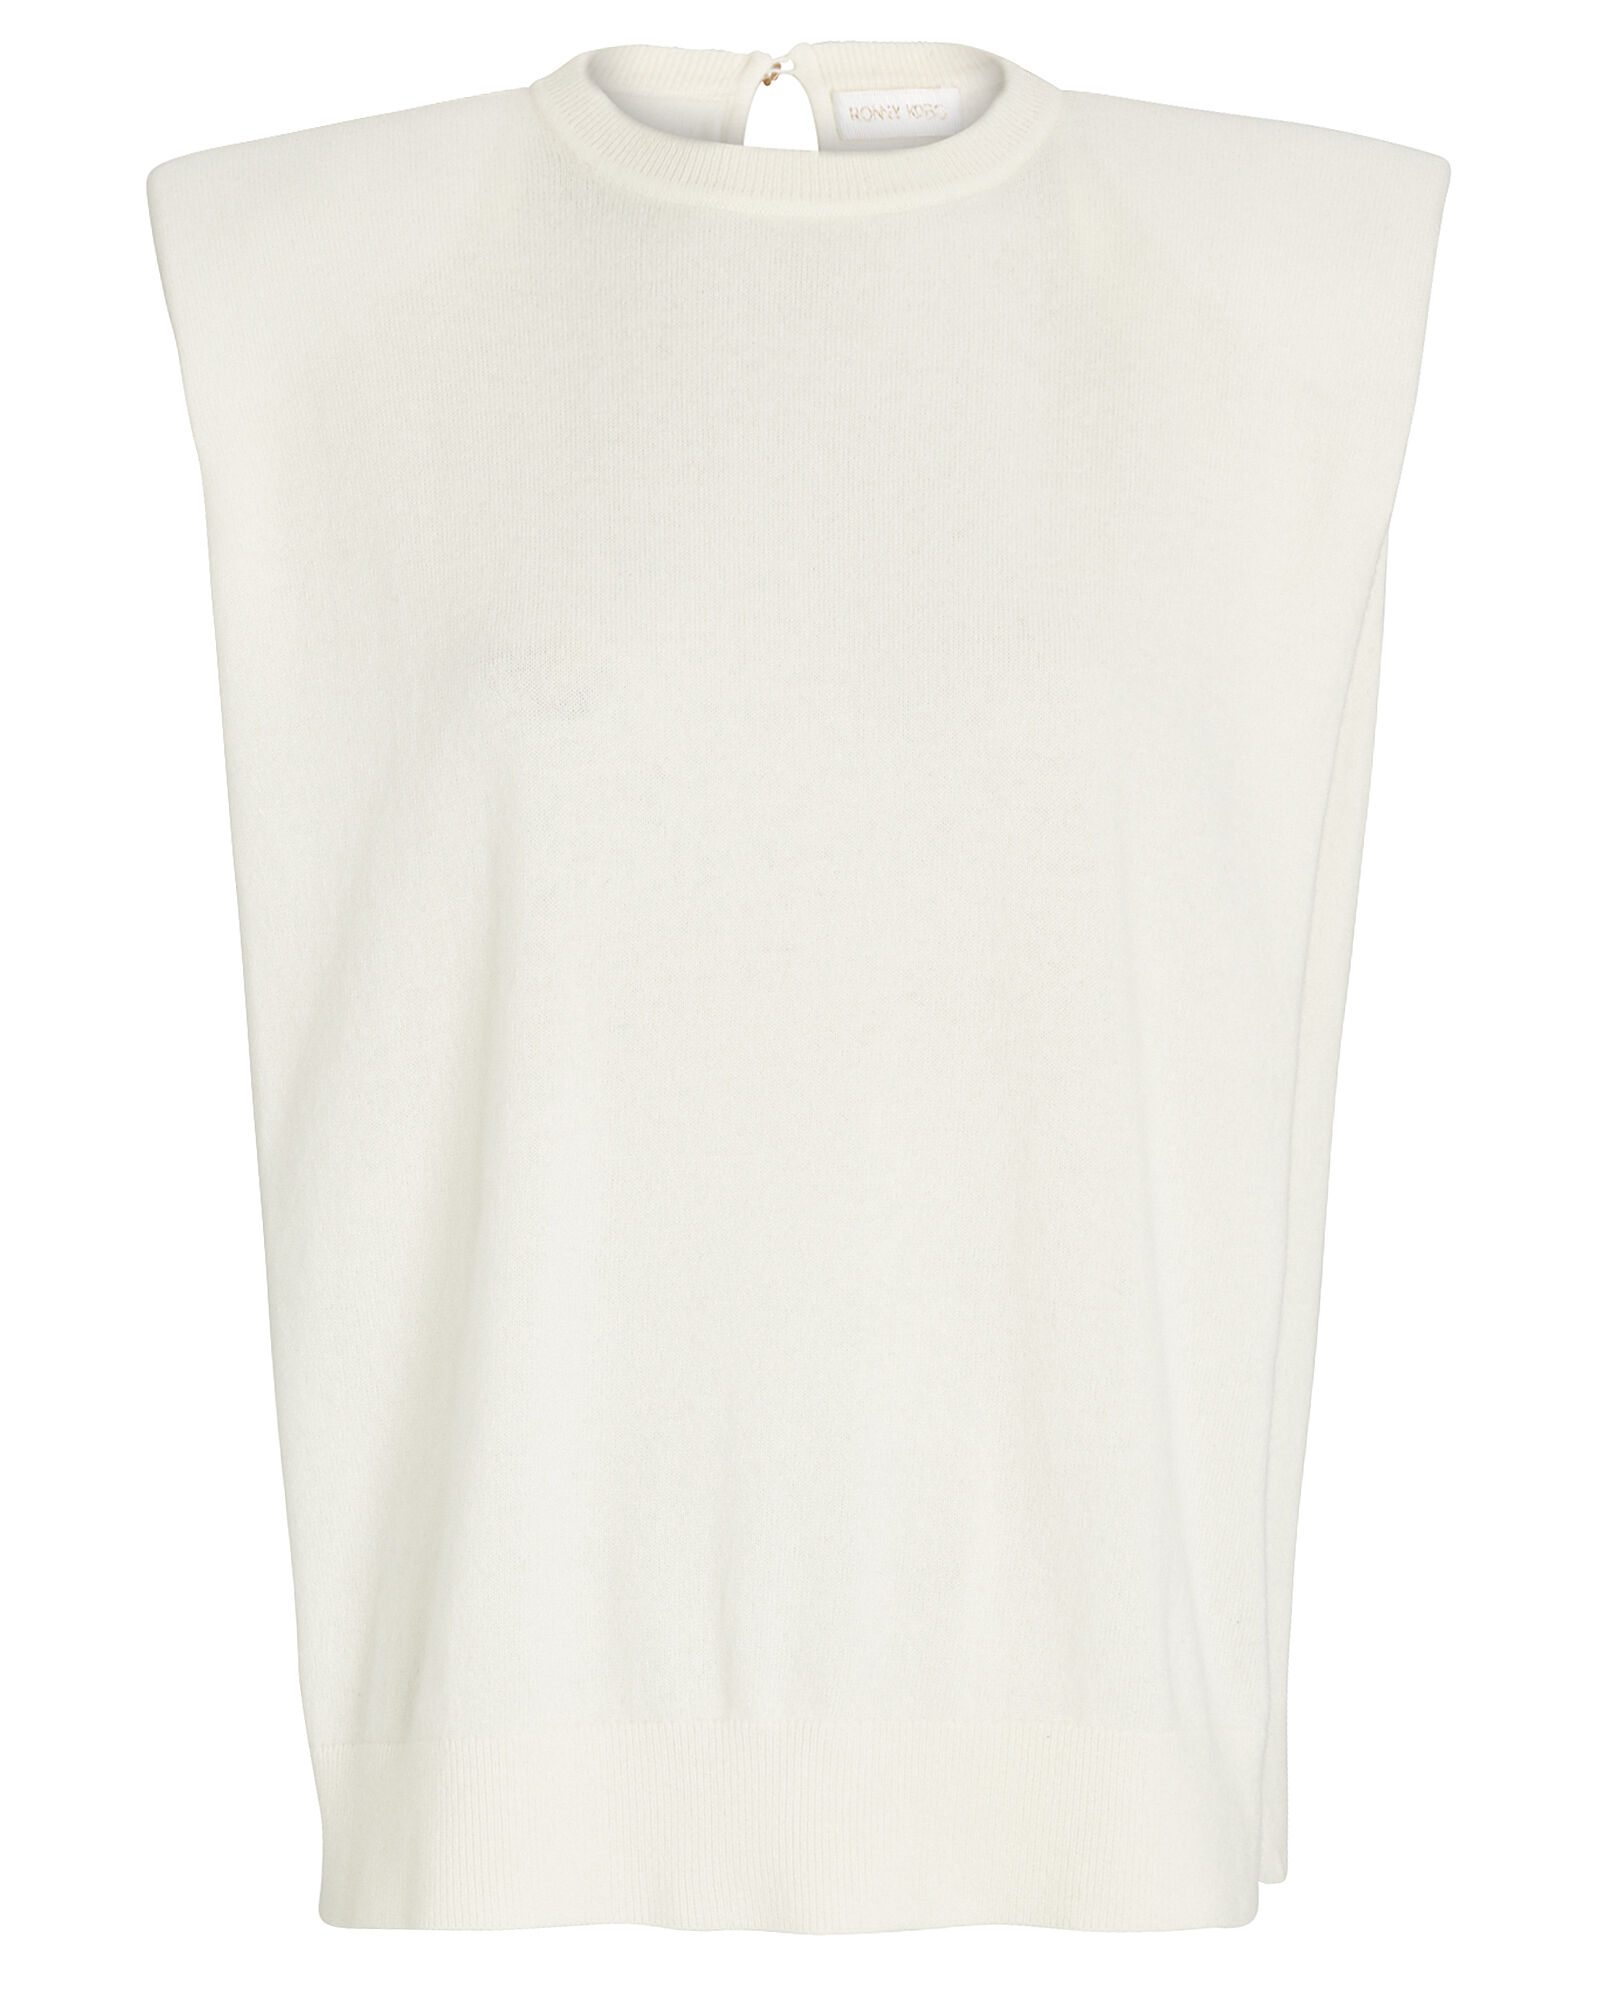 Jaitlin Padded Shoulder Tank Top, , hi-res